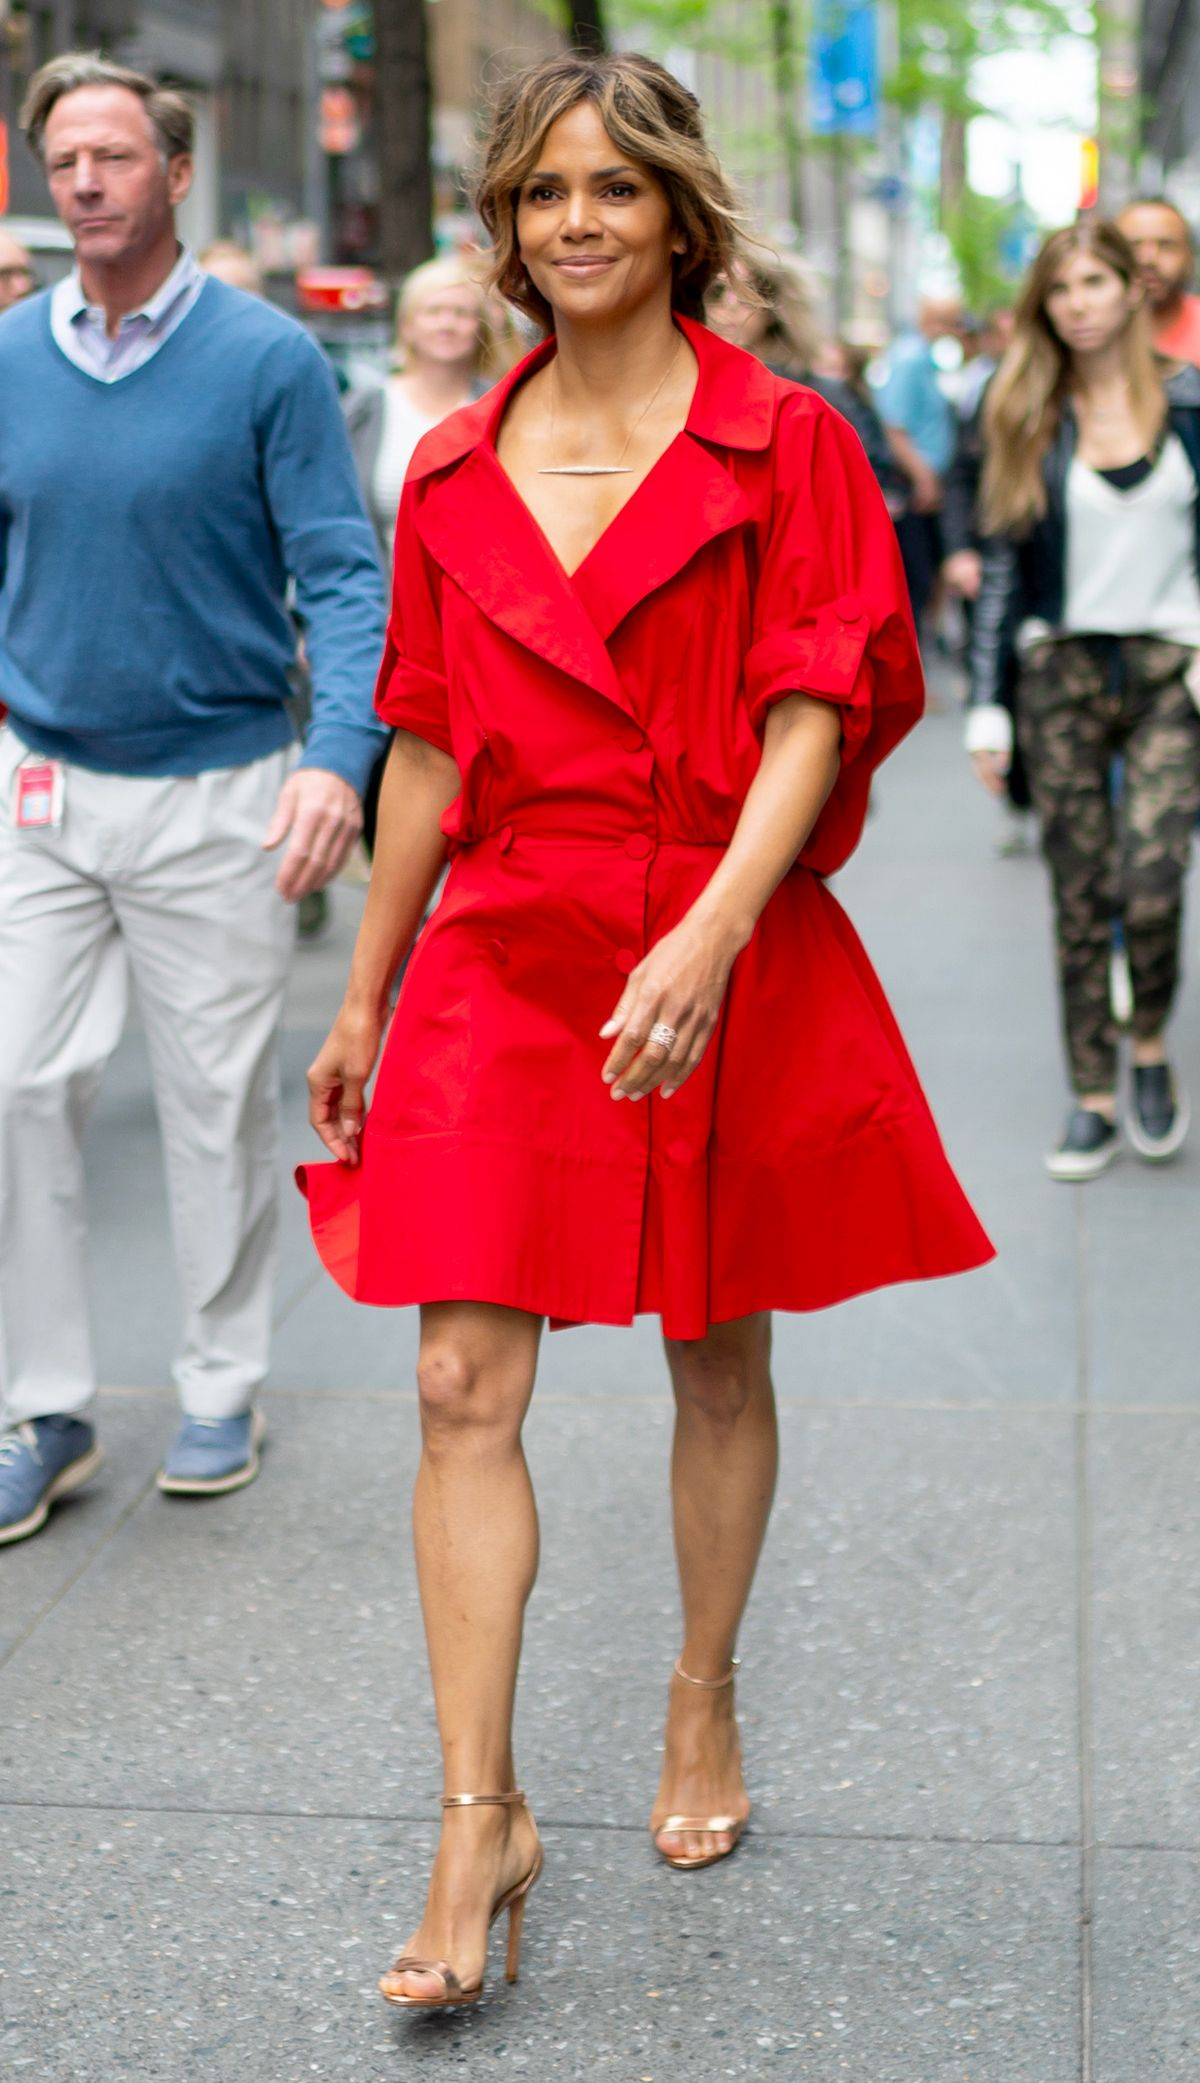 The Most Stylish Celebs Over 50, According to My Mom 19